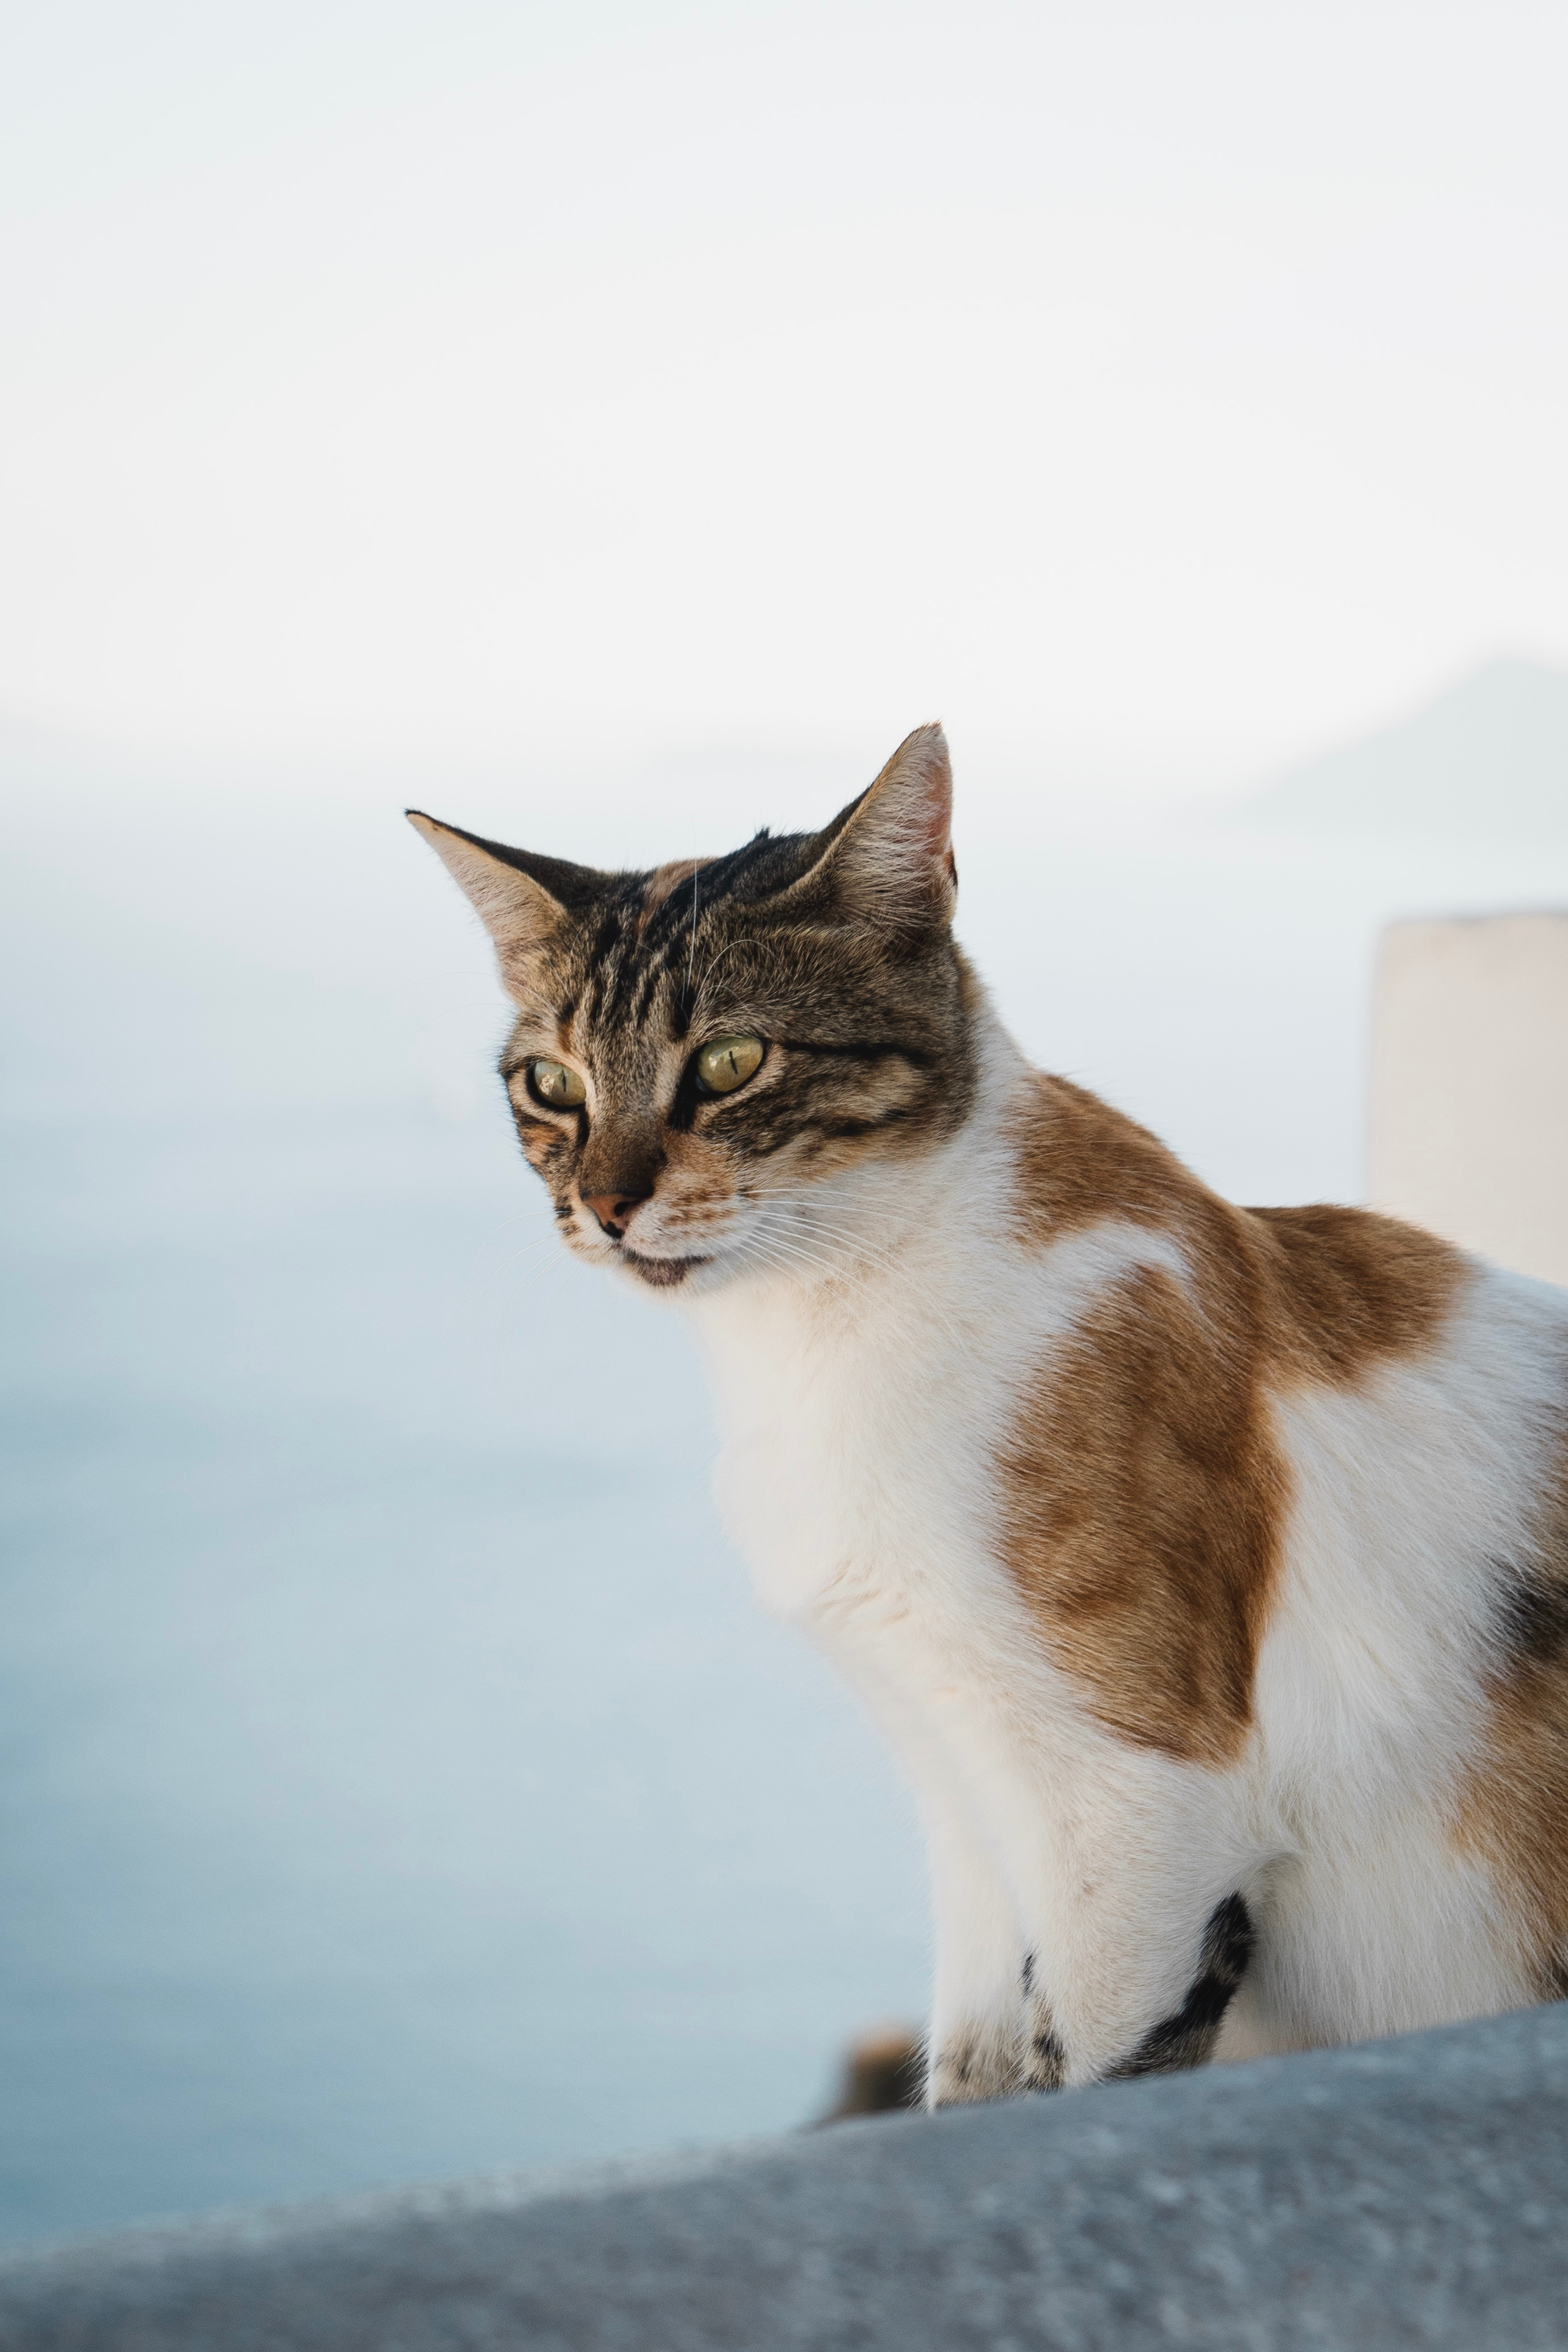 137656 download wallpaper Animals, Cat, Sight, Opinion, Pet, Animal, Spotted, Spotty screensavers and pictures for free